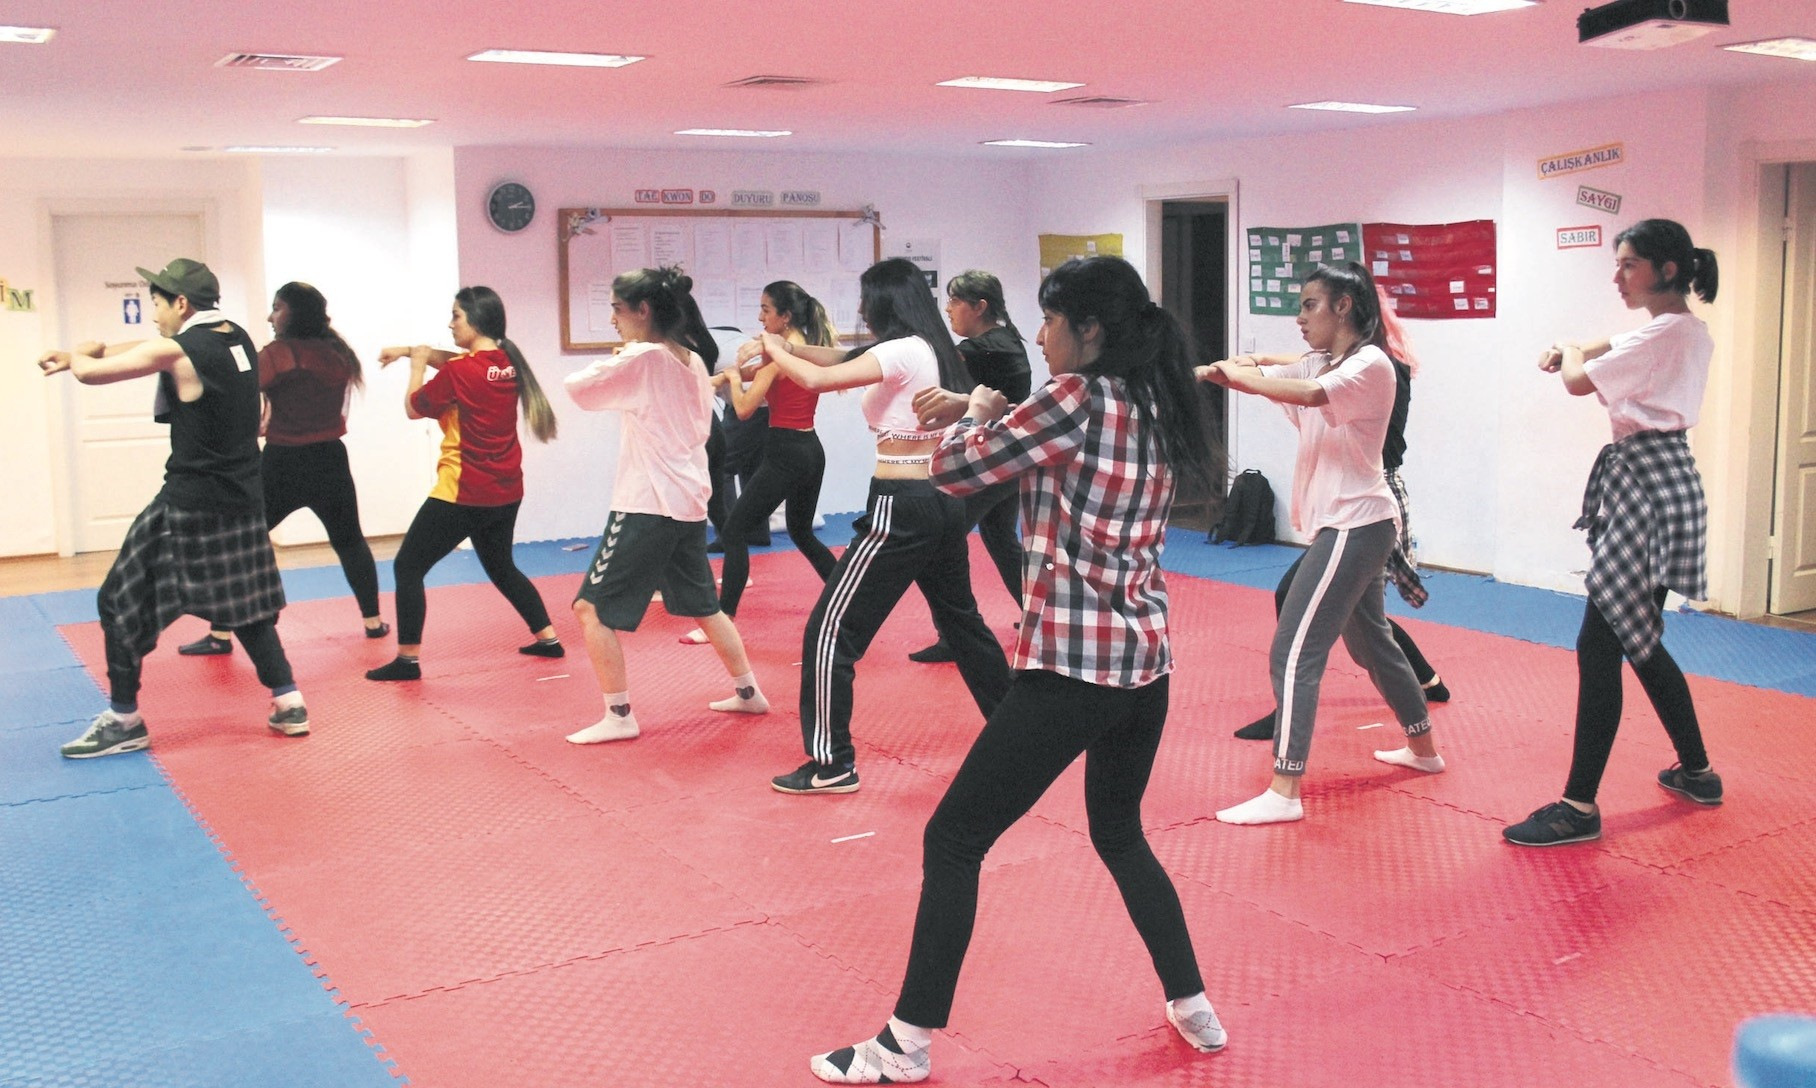 The legs and arms to move at the same time and these movements are to be carried out by all group members simultaneously and the harmony between them is one of the most important features of K-Pop.